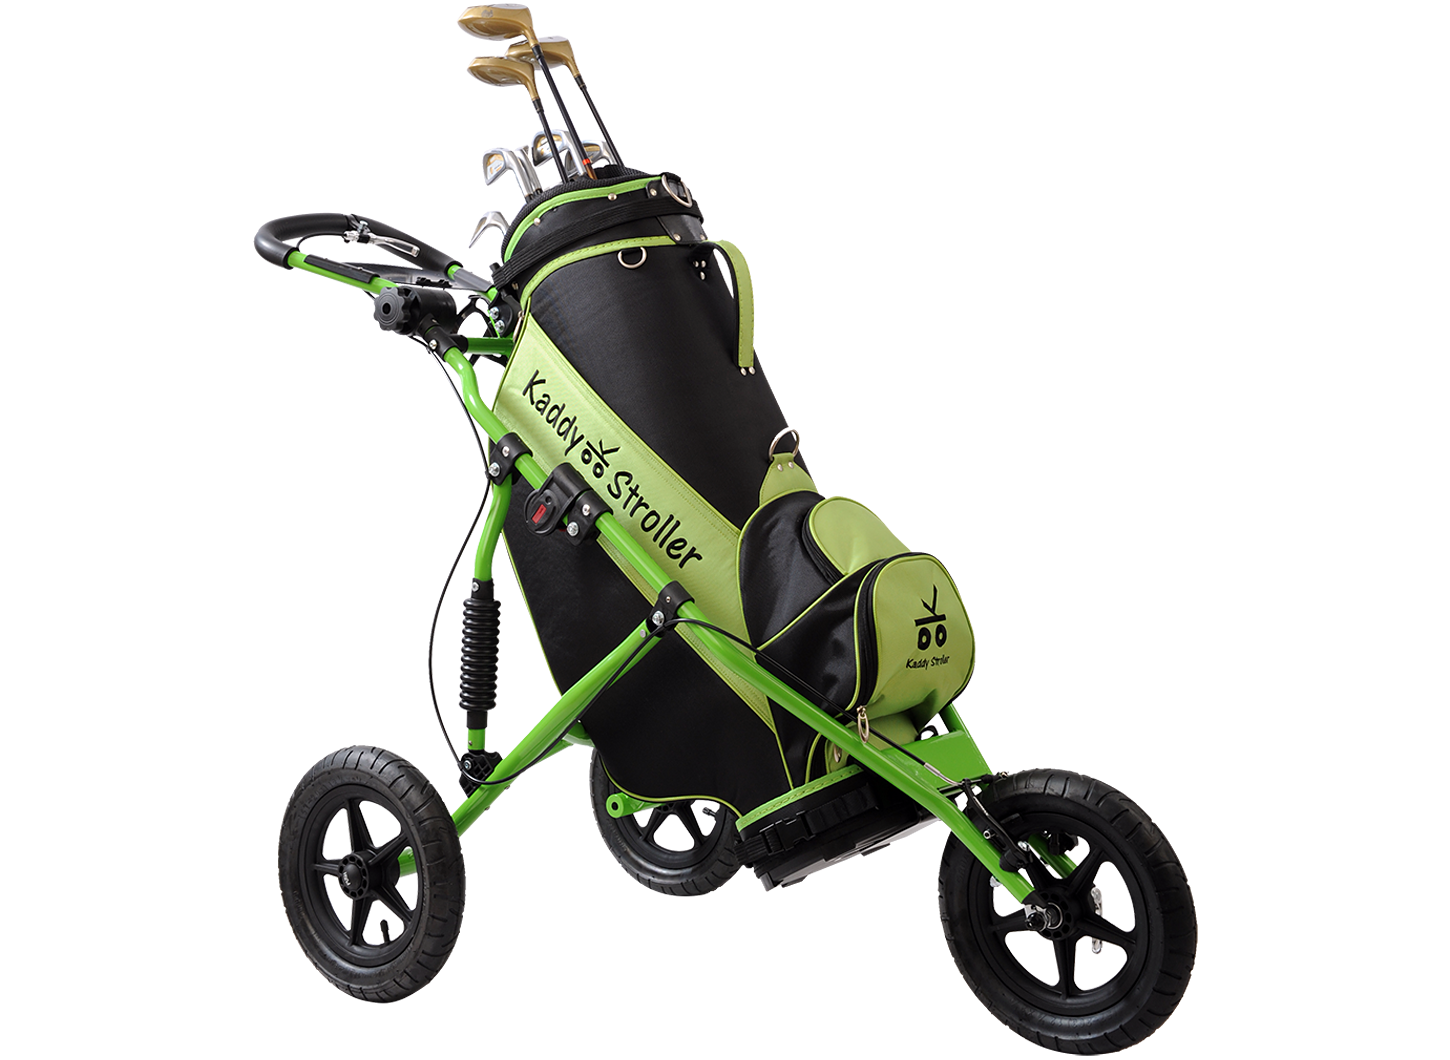 Kaddy Stroller in Vivid Green